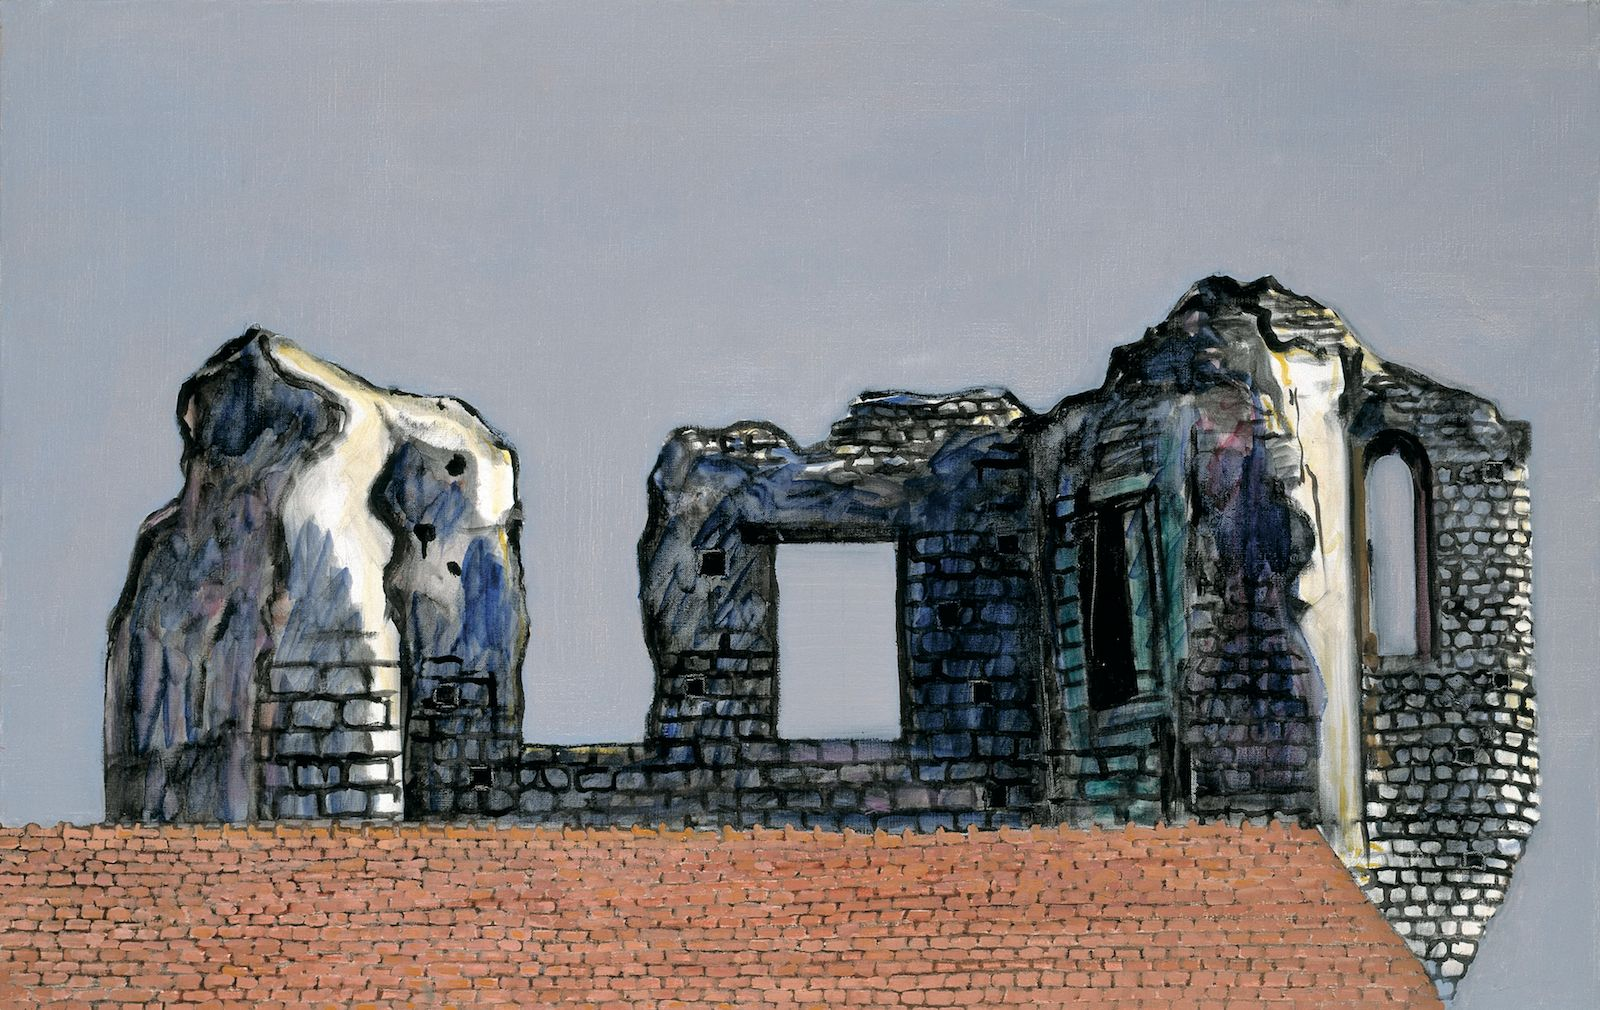 French Ruin I, 2003, oil in canvas, 72.5 x 116 cm